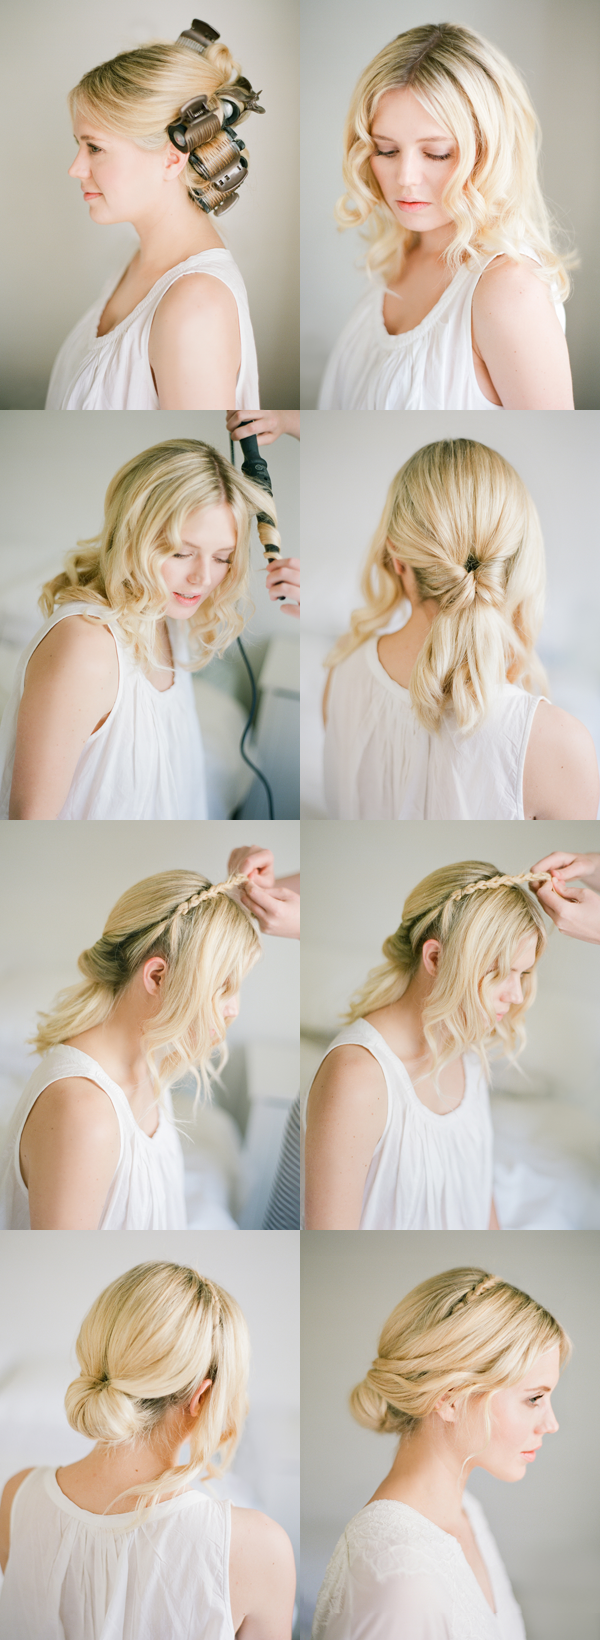 DIY Low Twisted Bun | Twist bun, Wedding updo and Updo